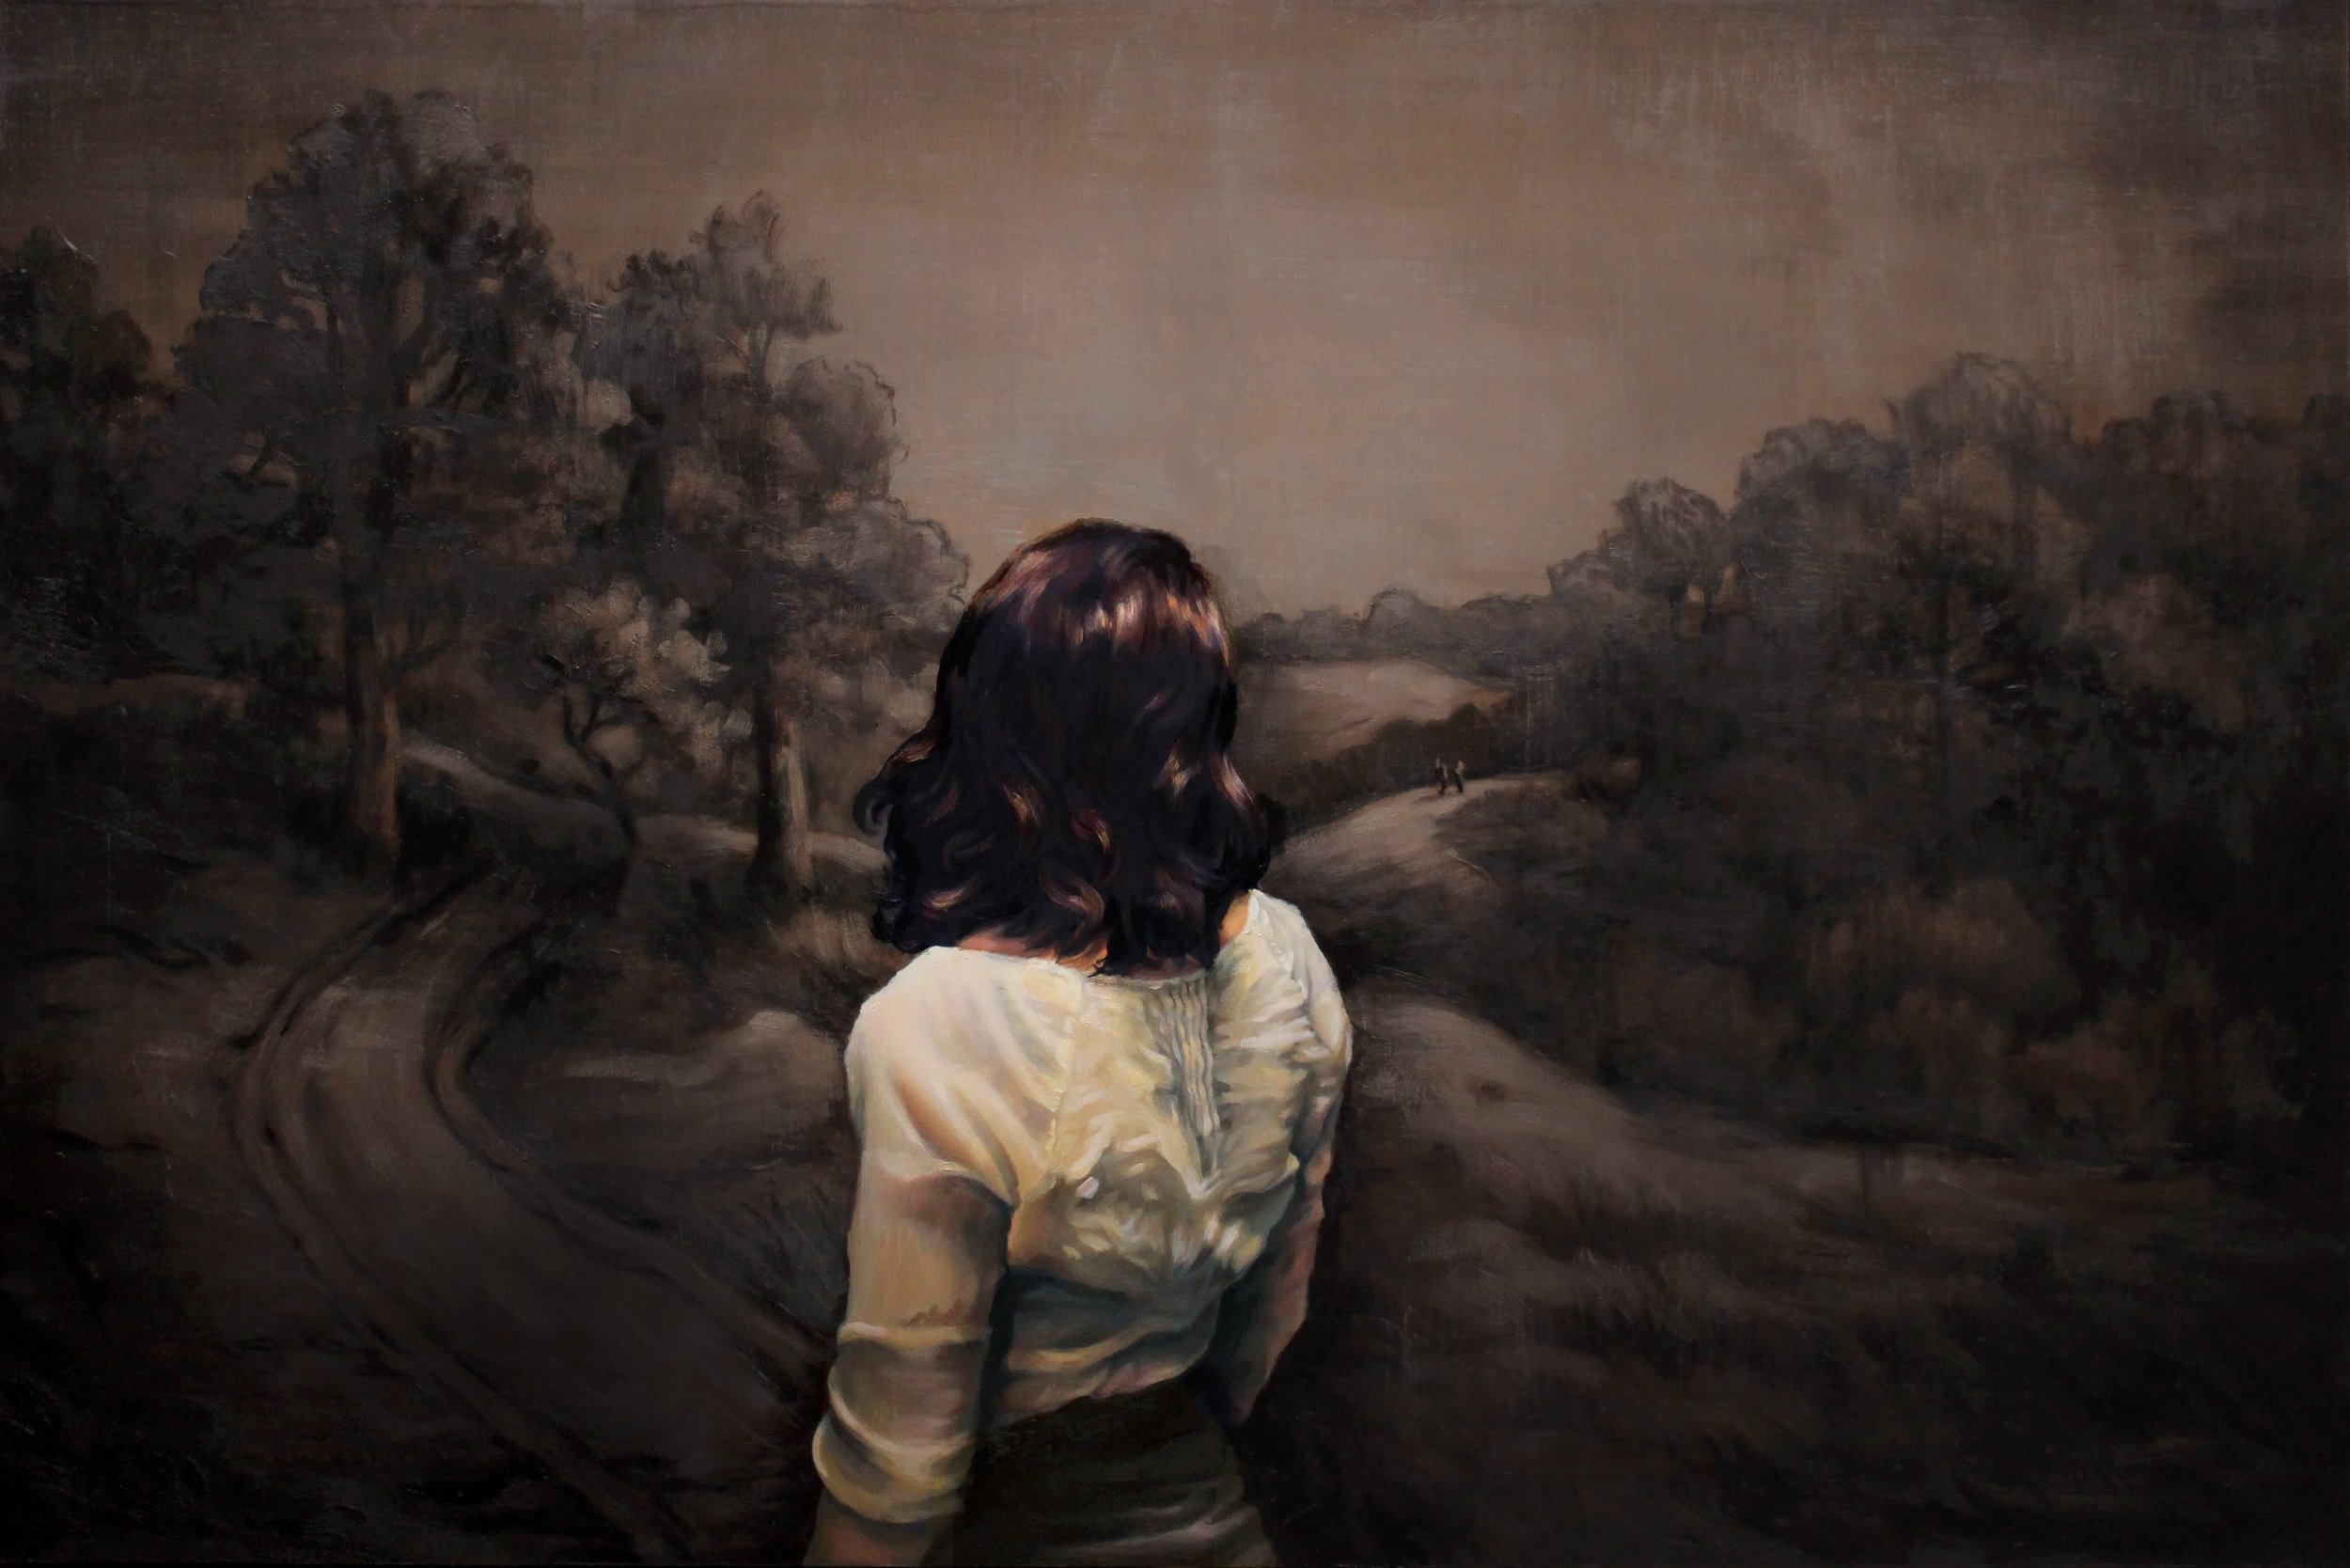 Mary Chiaramonte |  Far From Any Road (I watched you)  | Oil on panel | 20x30 inches | 2019